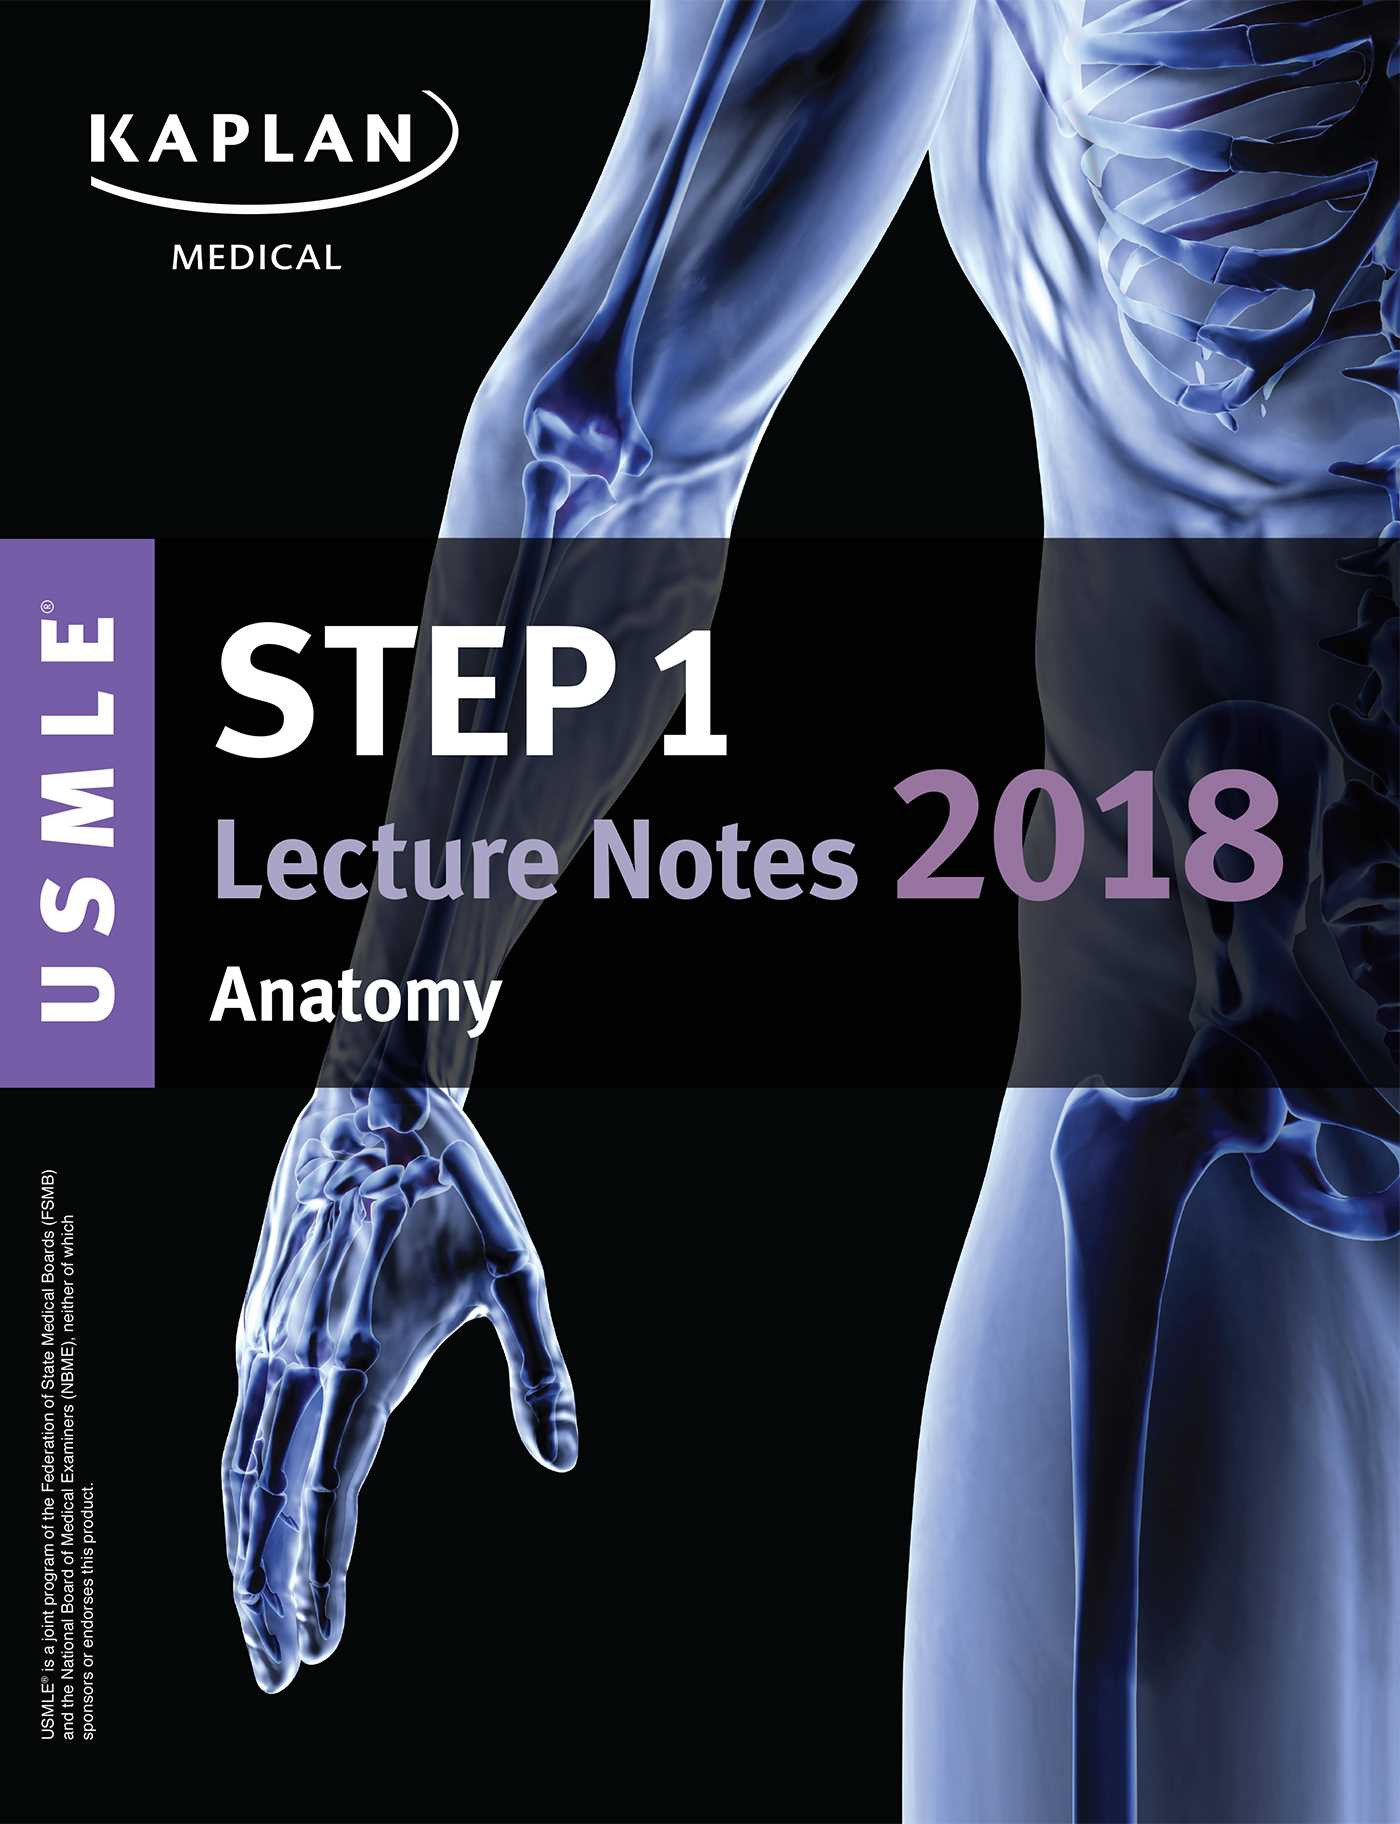 Usmle Step 1 Lecture Notes 2018 Anatomy Ebook By Kaplan Medical